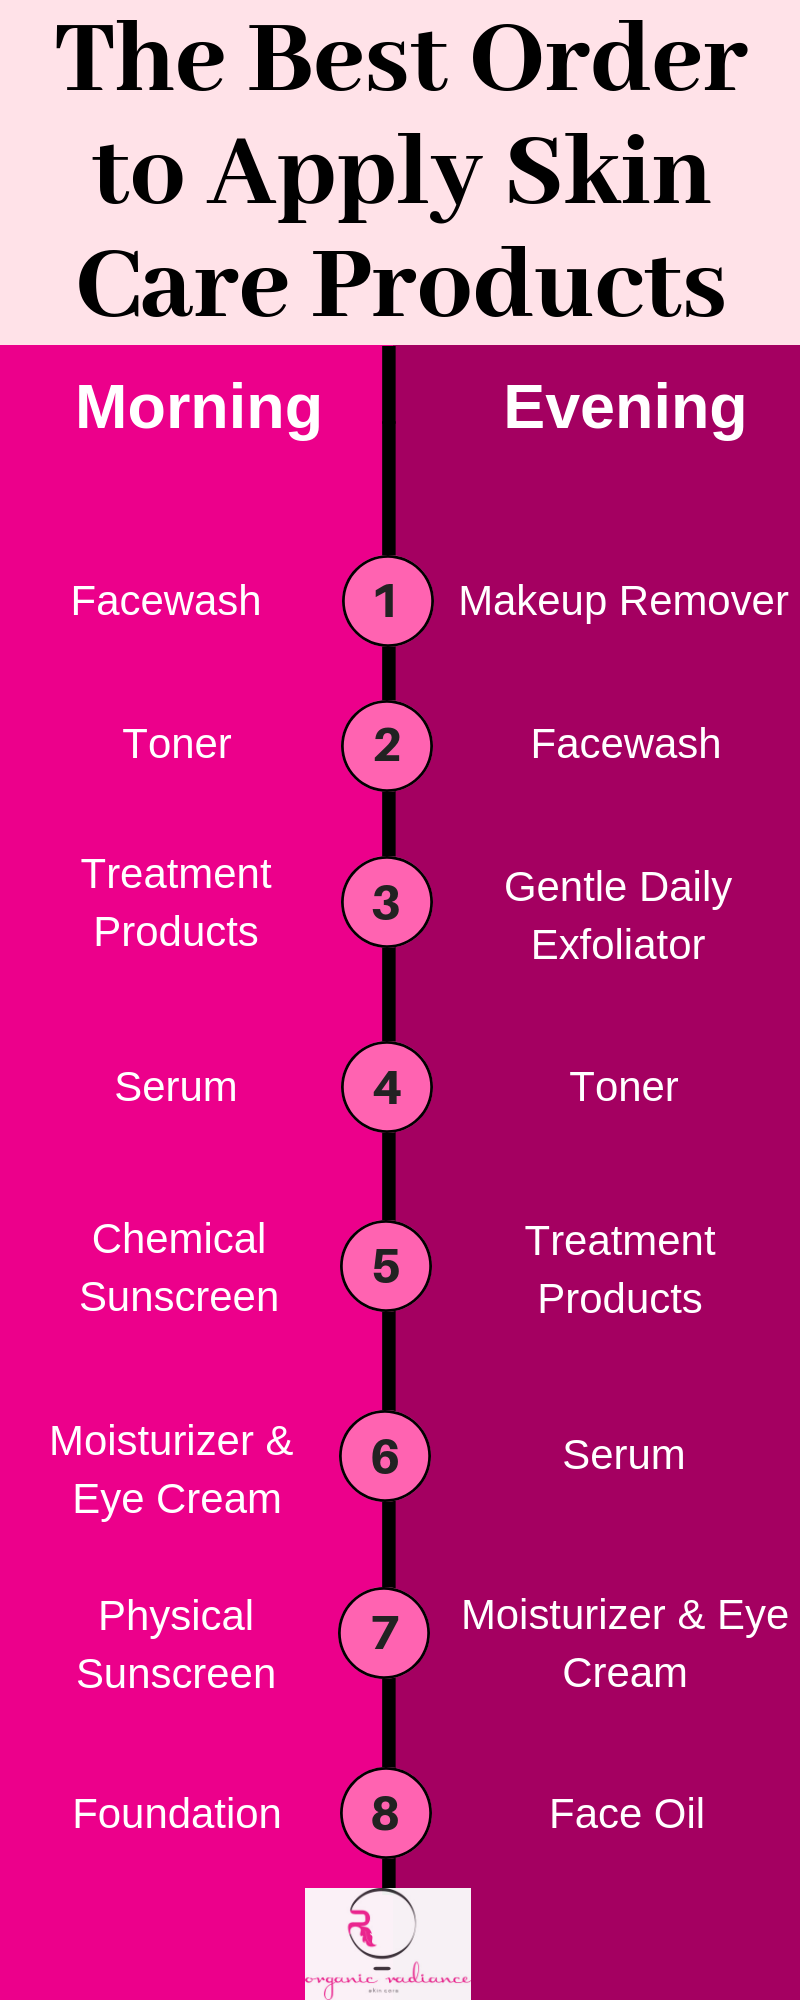 Best Order to Apply Skin Care Products Infographic_Organic Radiance Skincare